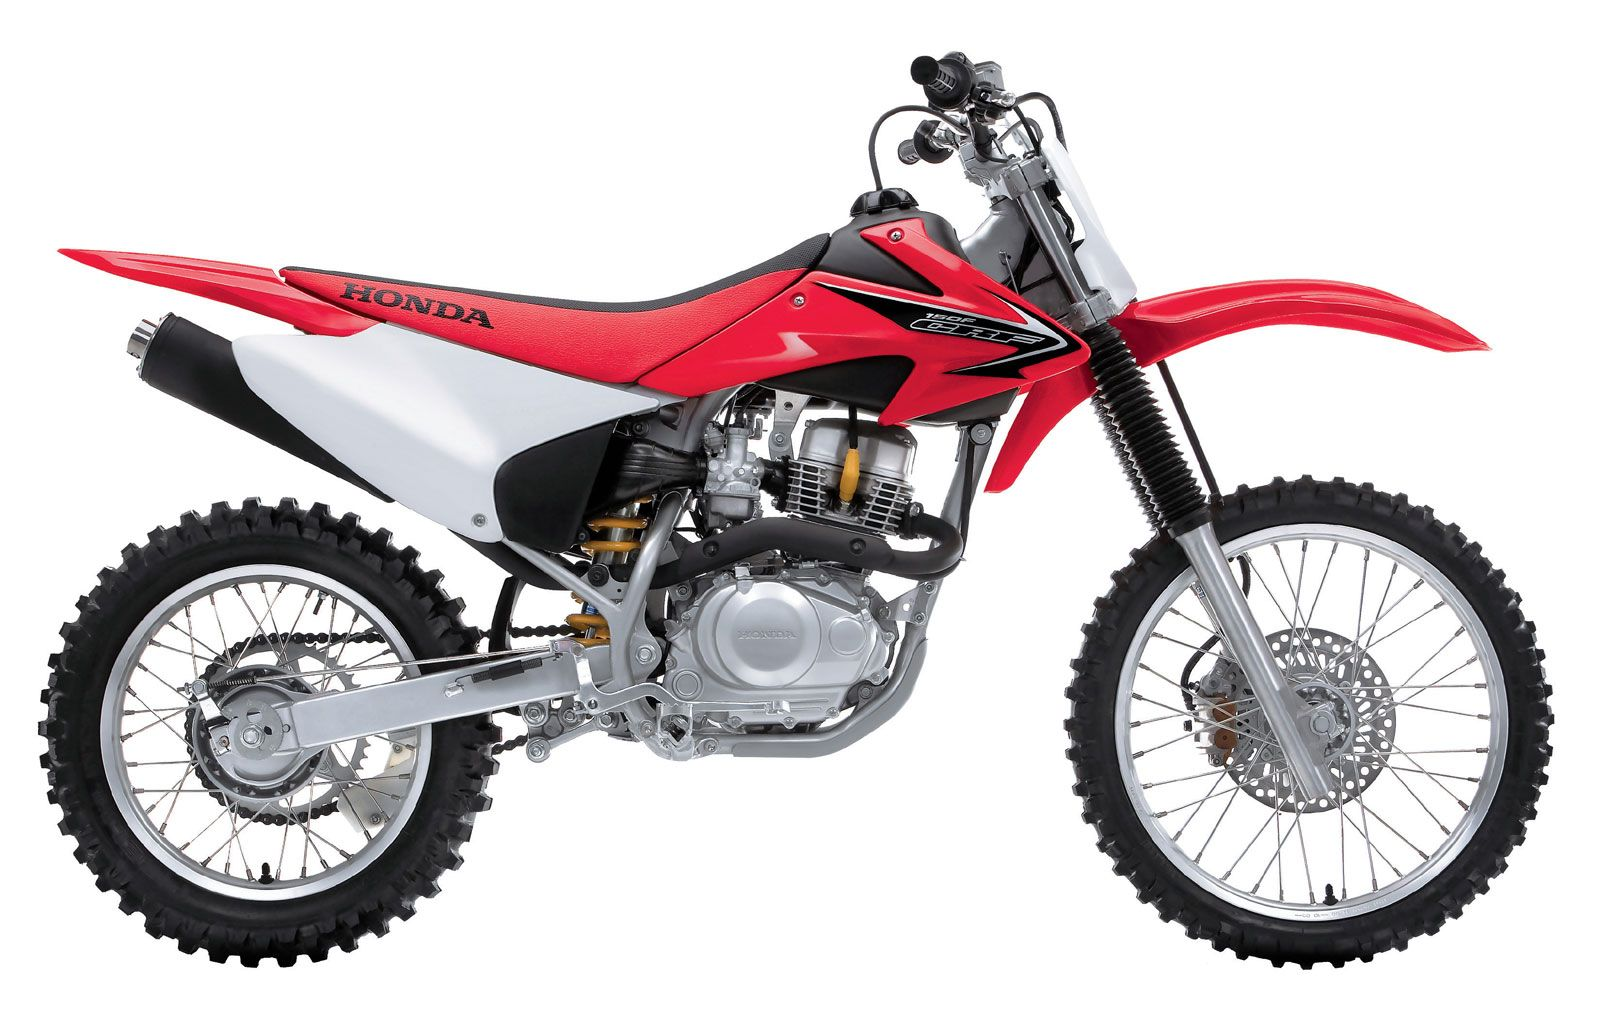 Click on image to download HONDA CRF150F SERVICE REPAIR